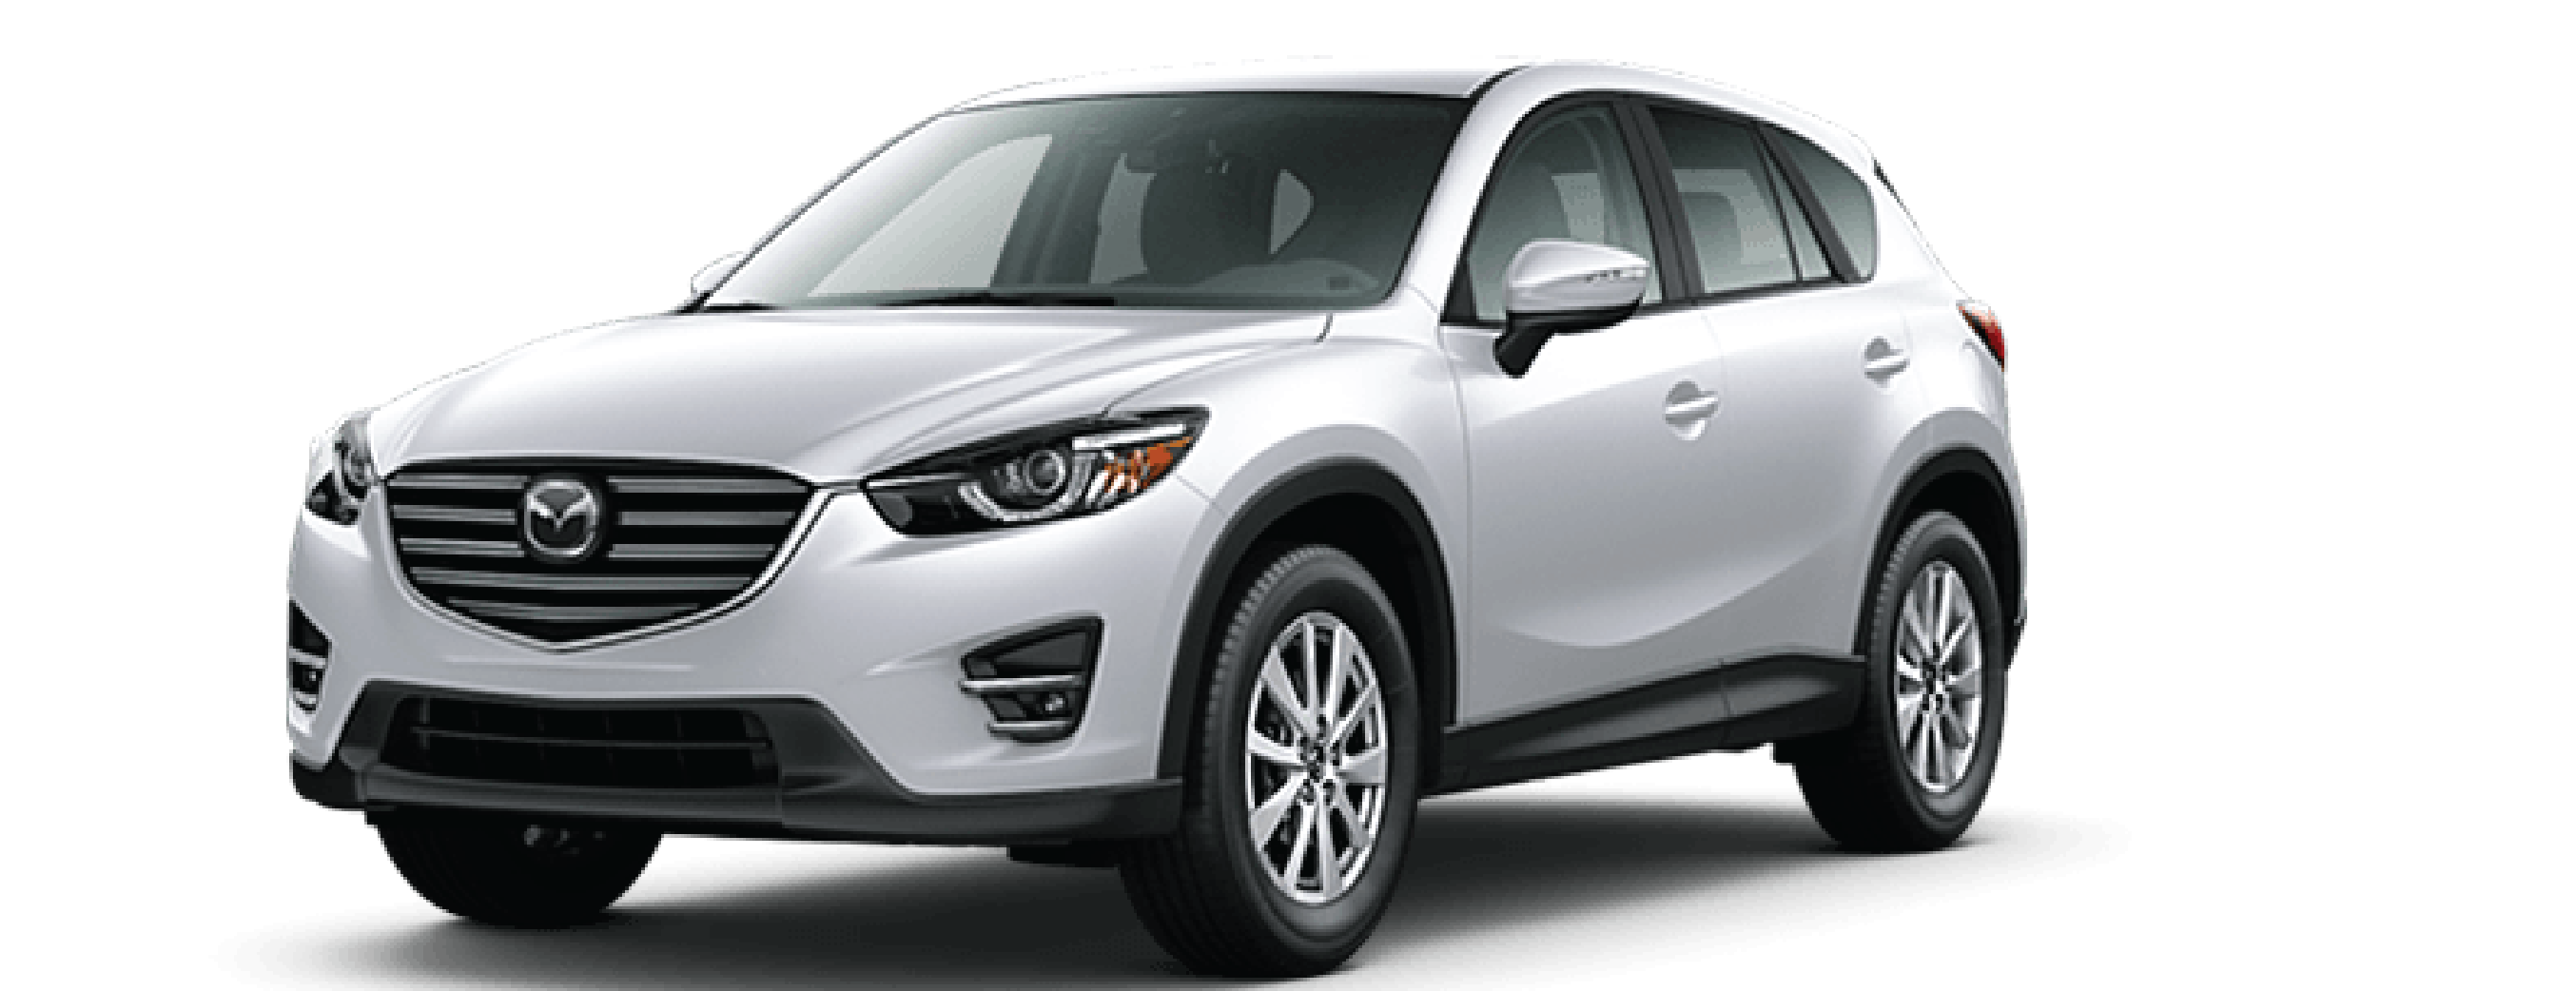 south motors mazda auto service in miami fl